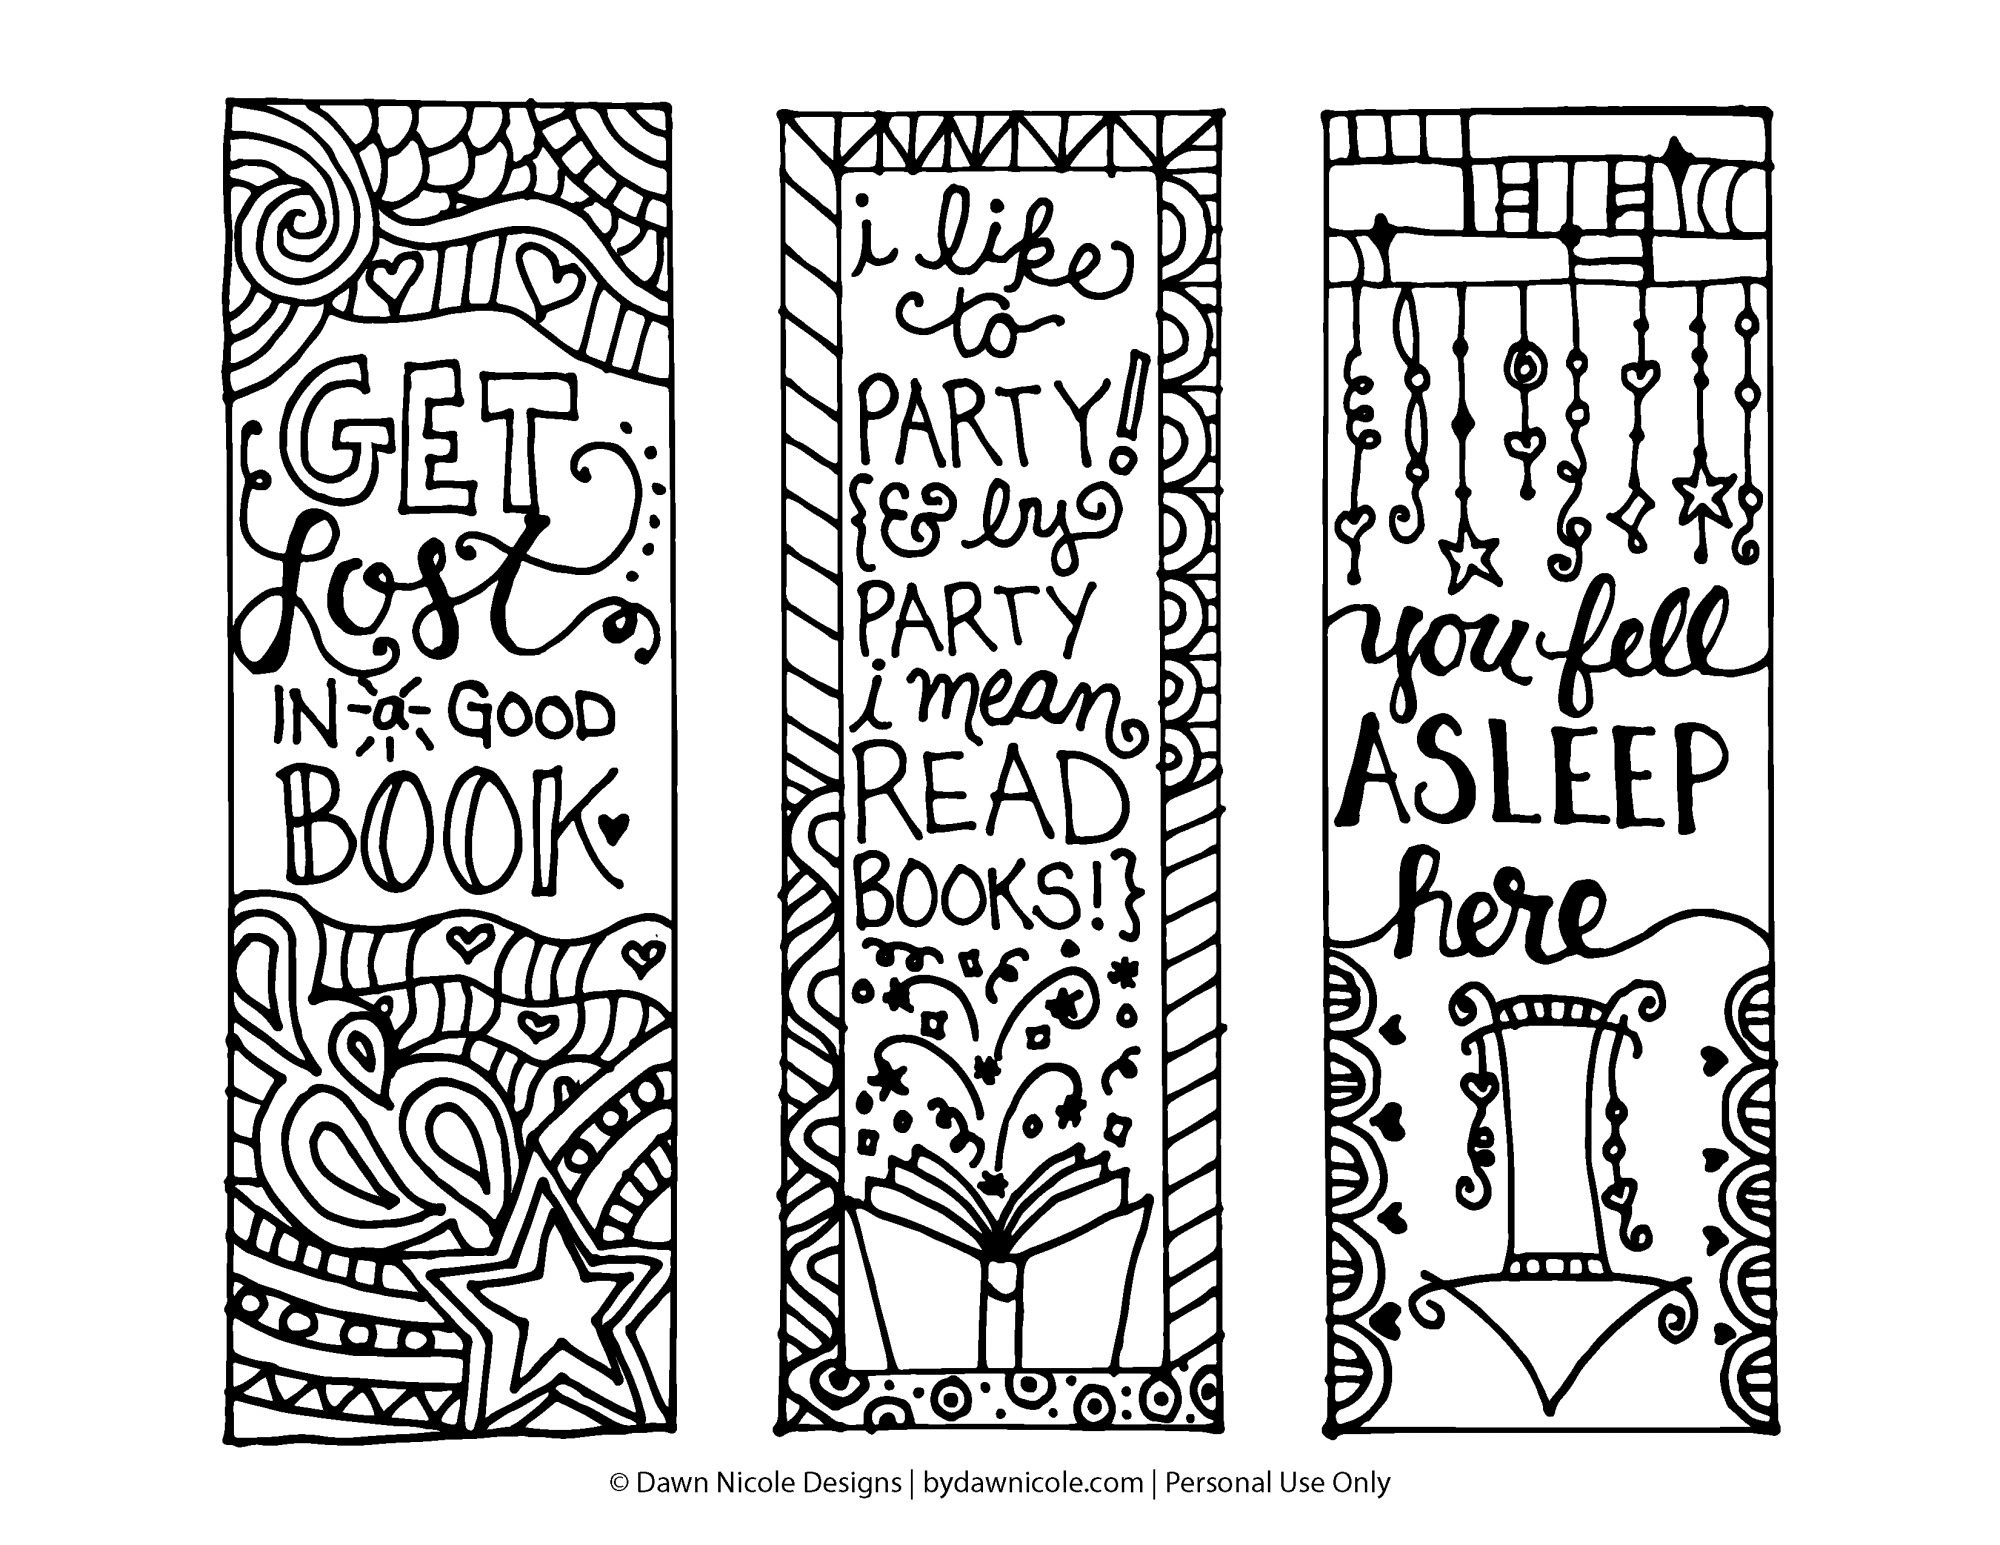 Free Printable Coloring Page Bookmarks | Dawn Nicole Designs® throughout Bookmark Designs To Print Black And White Quotes 26454